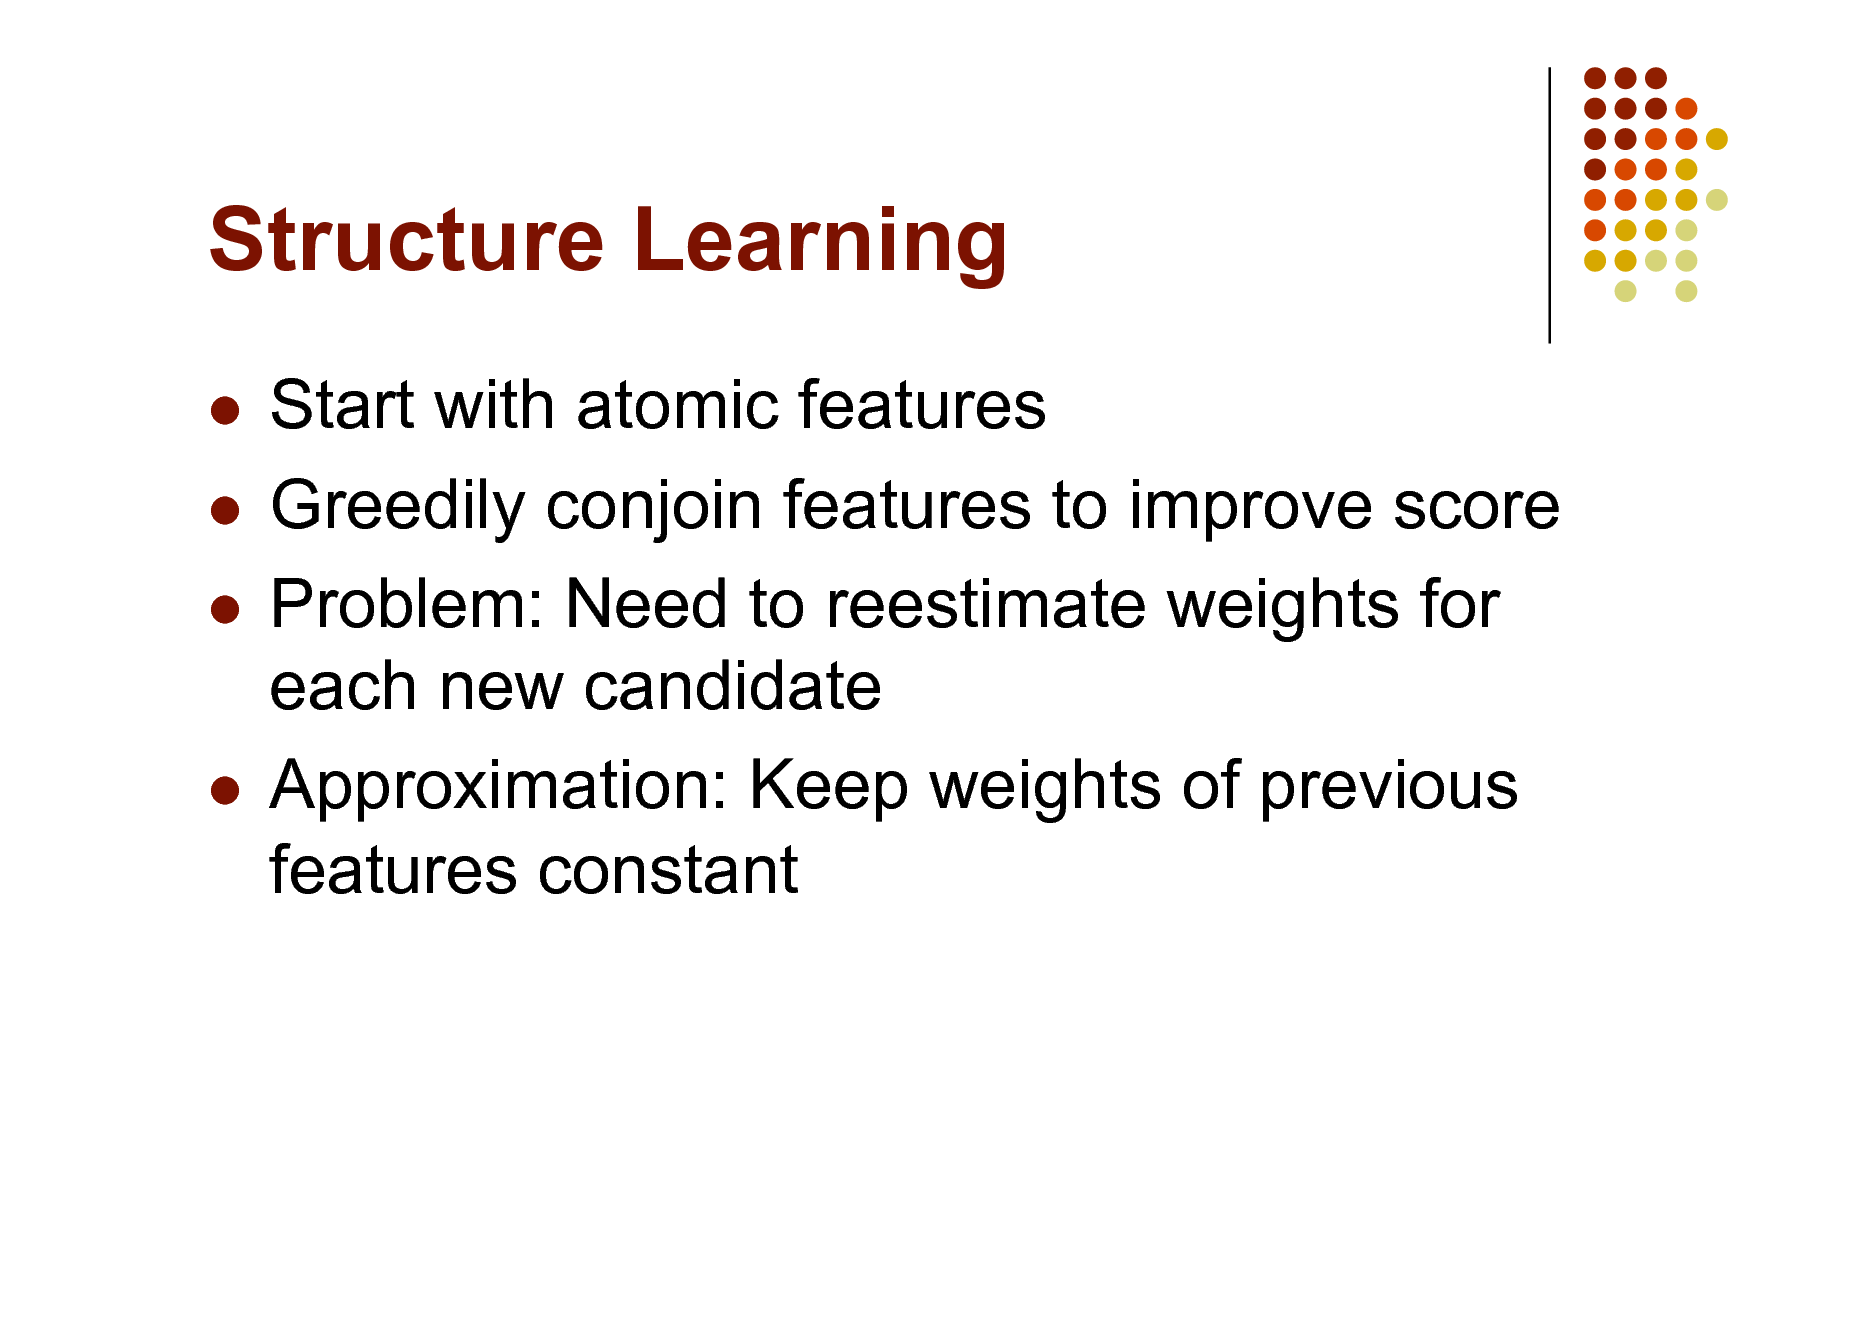 Slide: Structure Learning Start with atomic features  Greedily conjoin features to improve score  Problem: Need to reestimate weights for each new candidate  Approximation: Keep weights of previous features constant